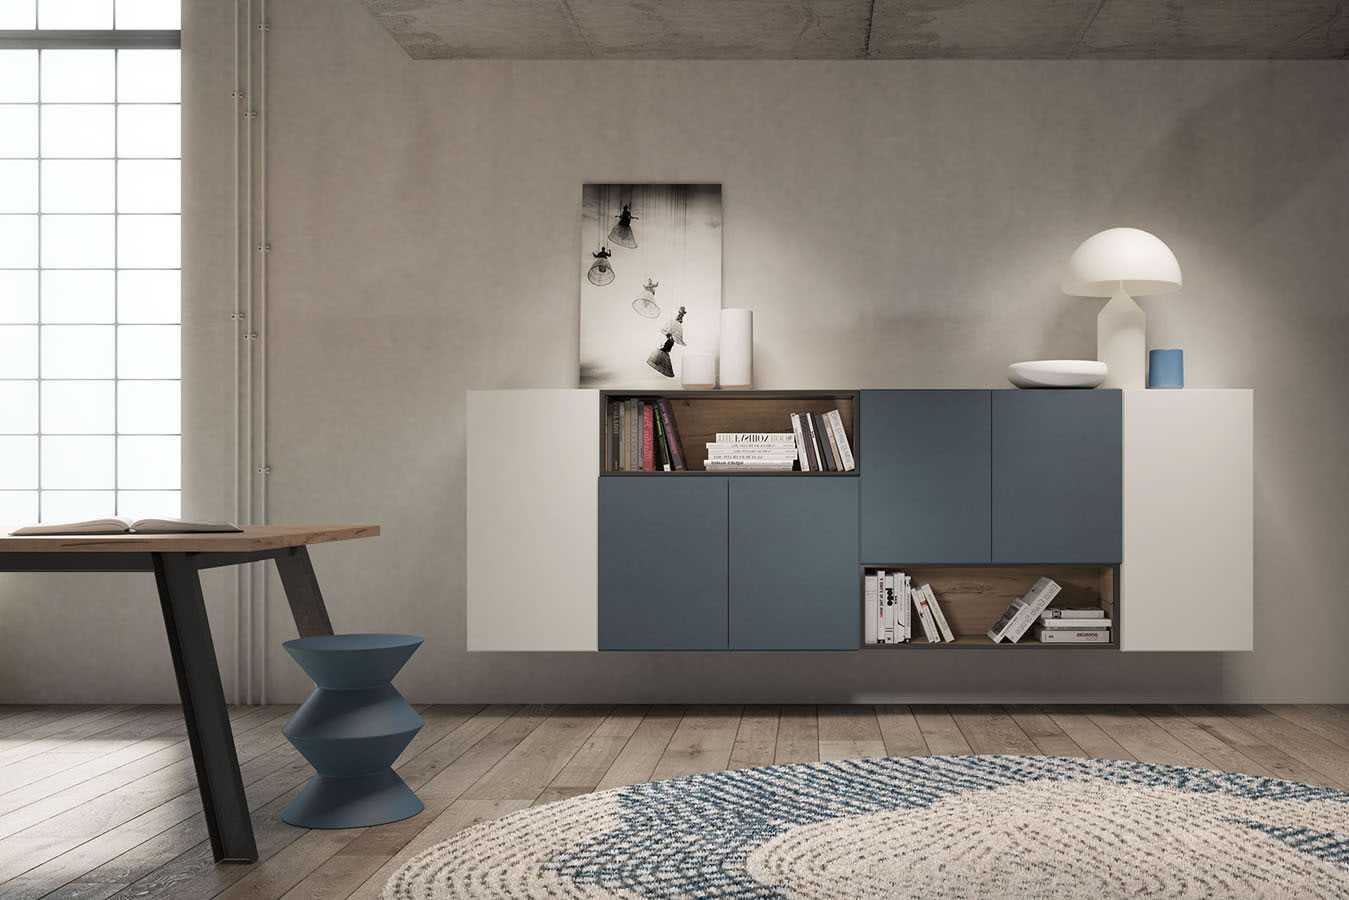 Designer Sideboards Mr 03 Contemporary Italian Sideboards Modern Italian Designer